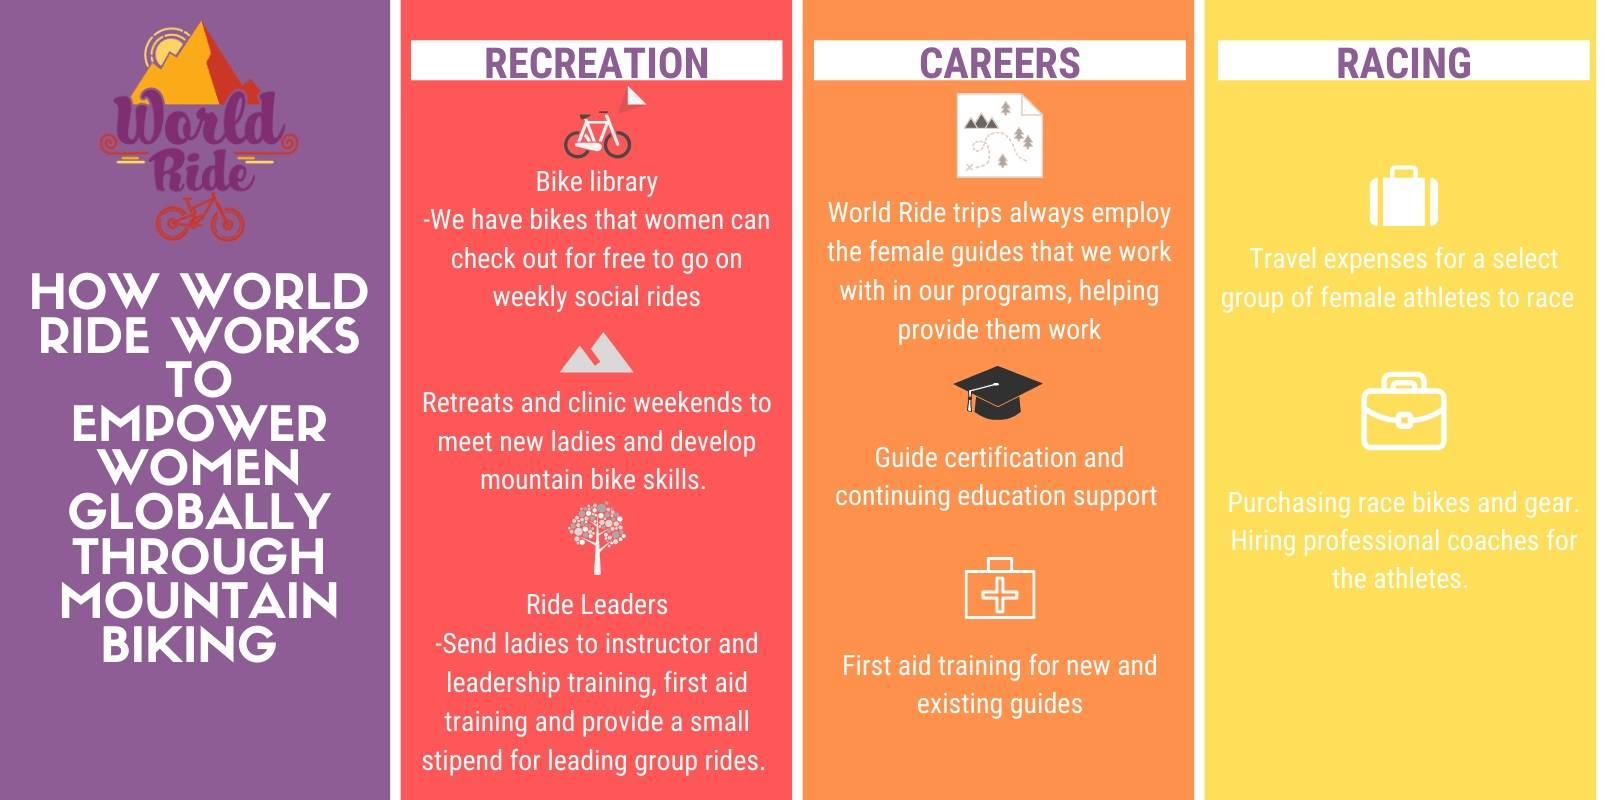 World Ride's approach to empowering women through mtb in three main areas: 1. recreation 2. career building 3. racing/athletic goals